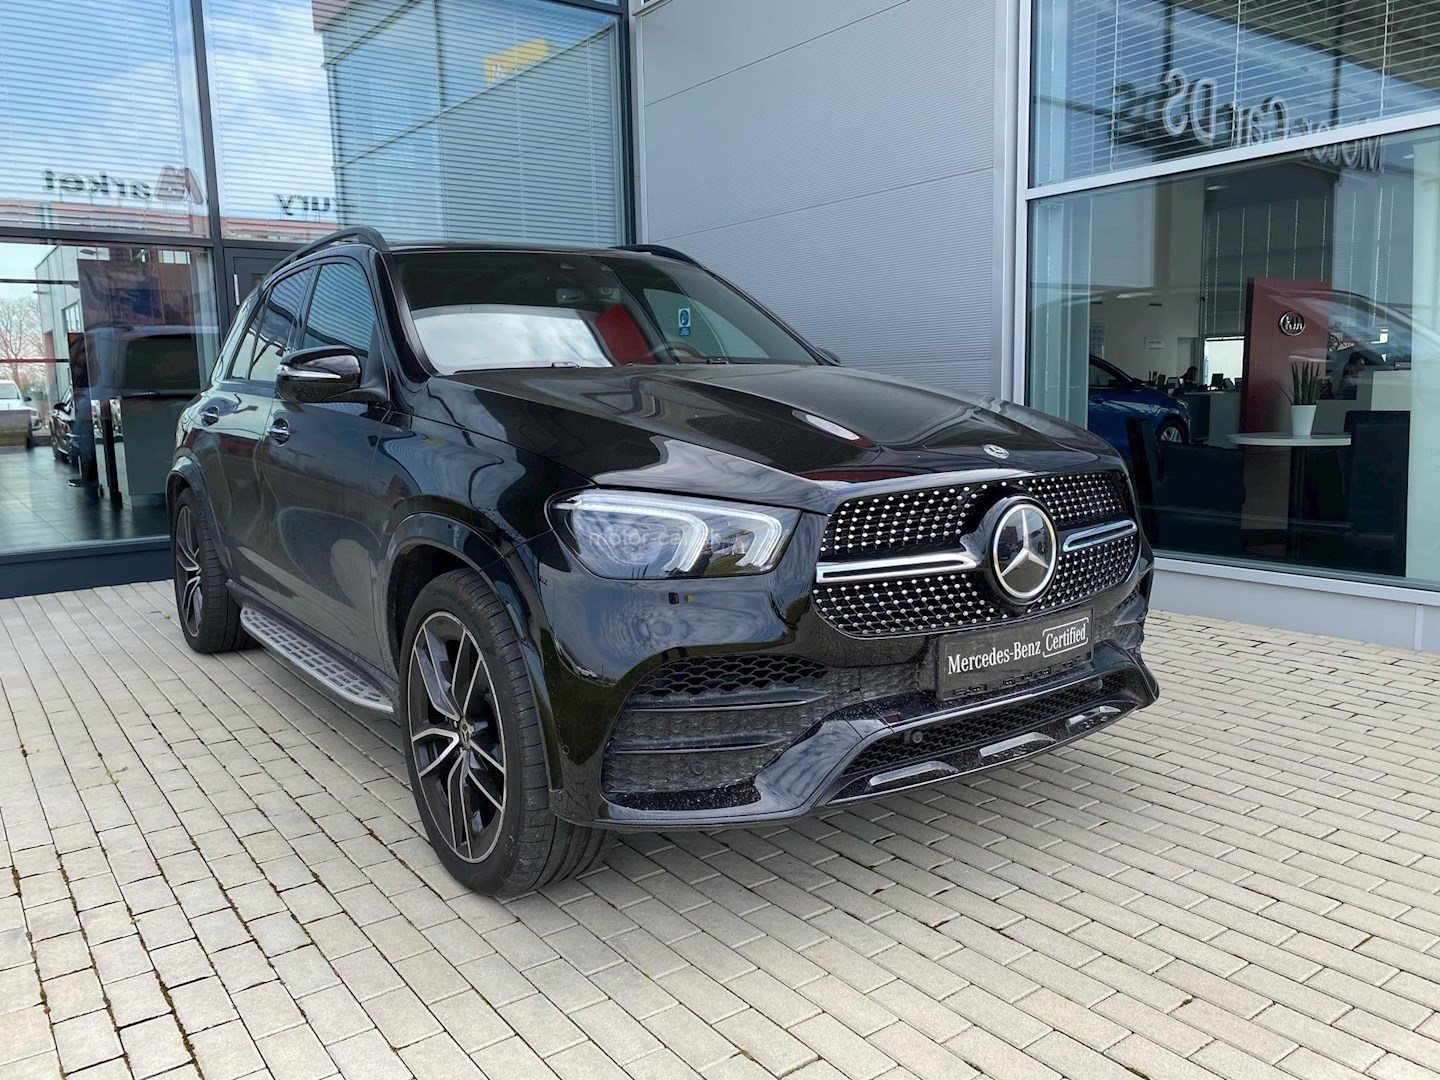 mercedes-benz gle 400 d 4matic